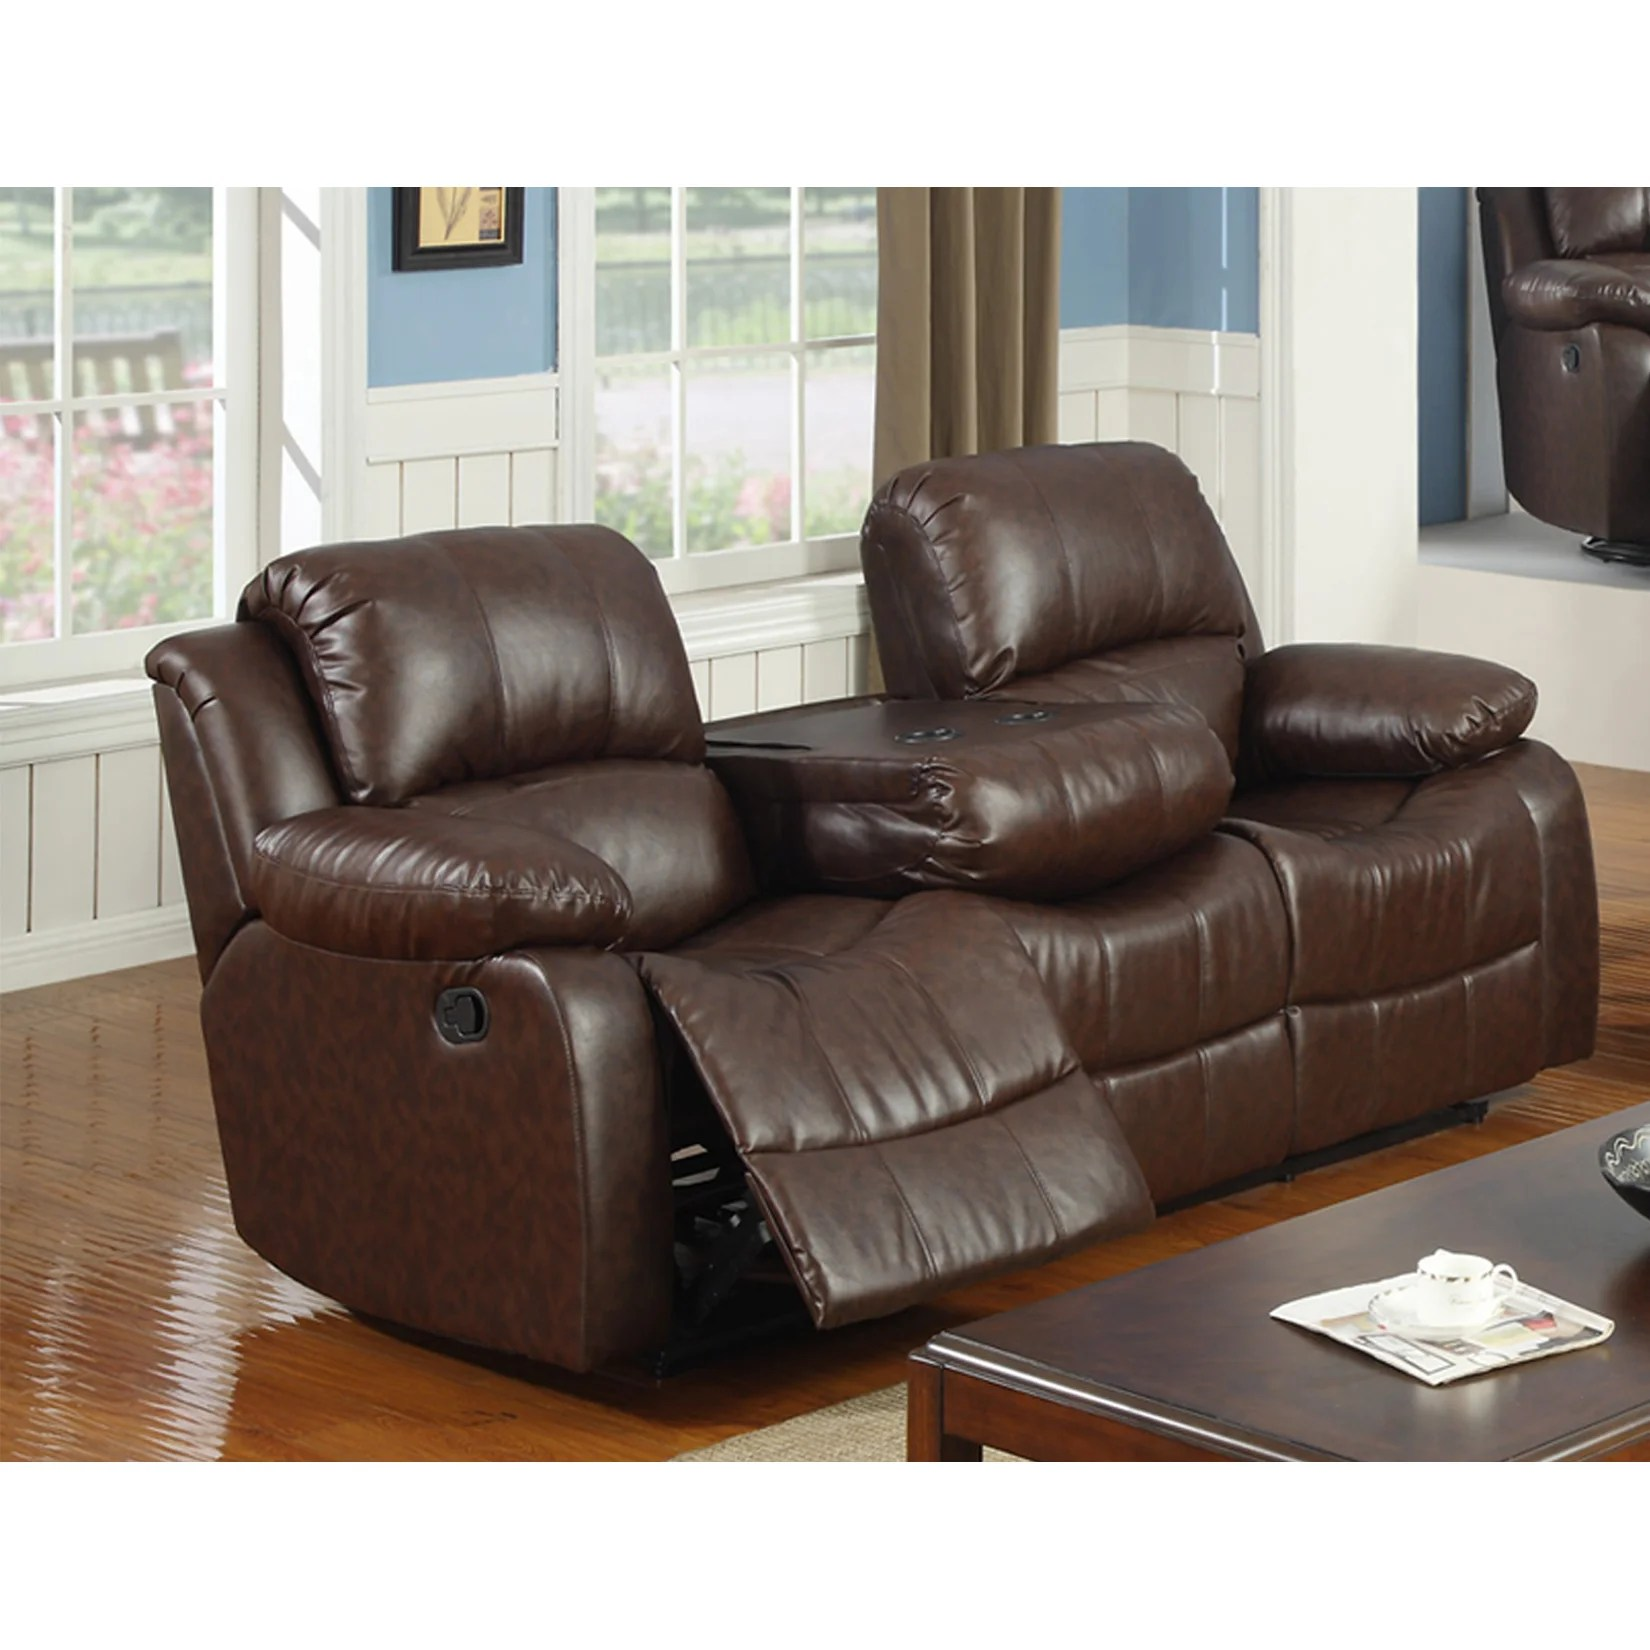 Best Quality Furniture Bonded Leather Recliner Sofa Wayfair Sc 1 St